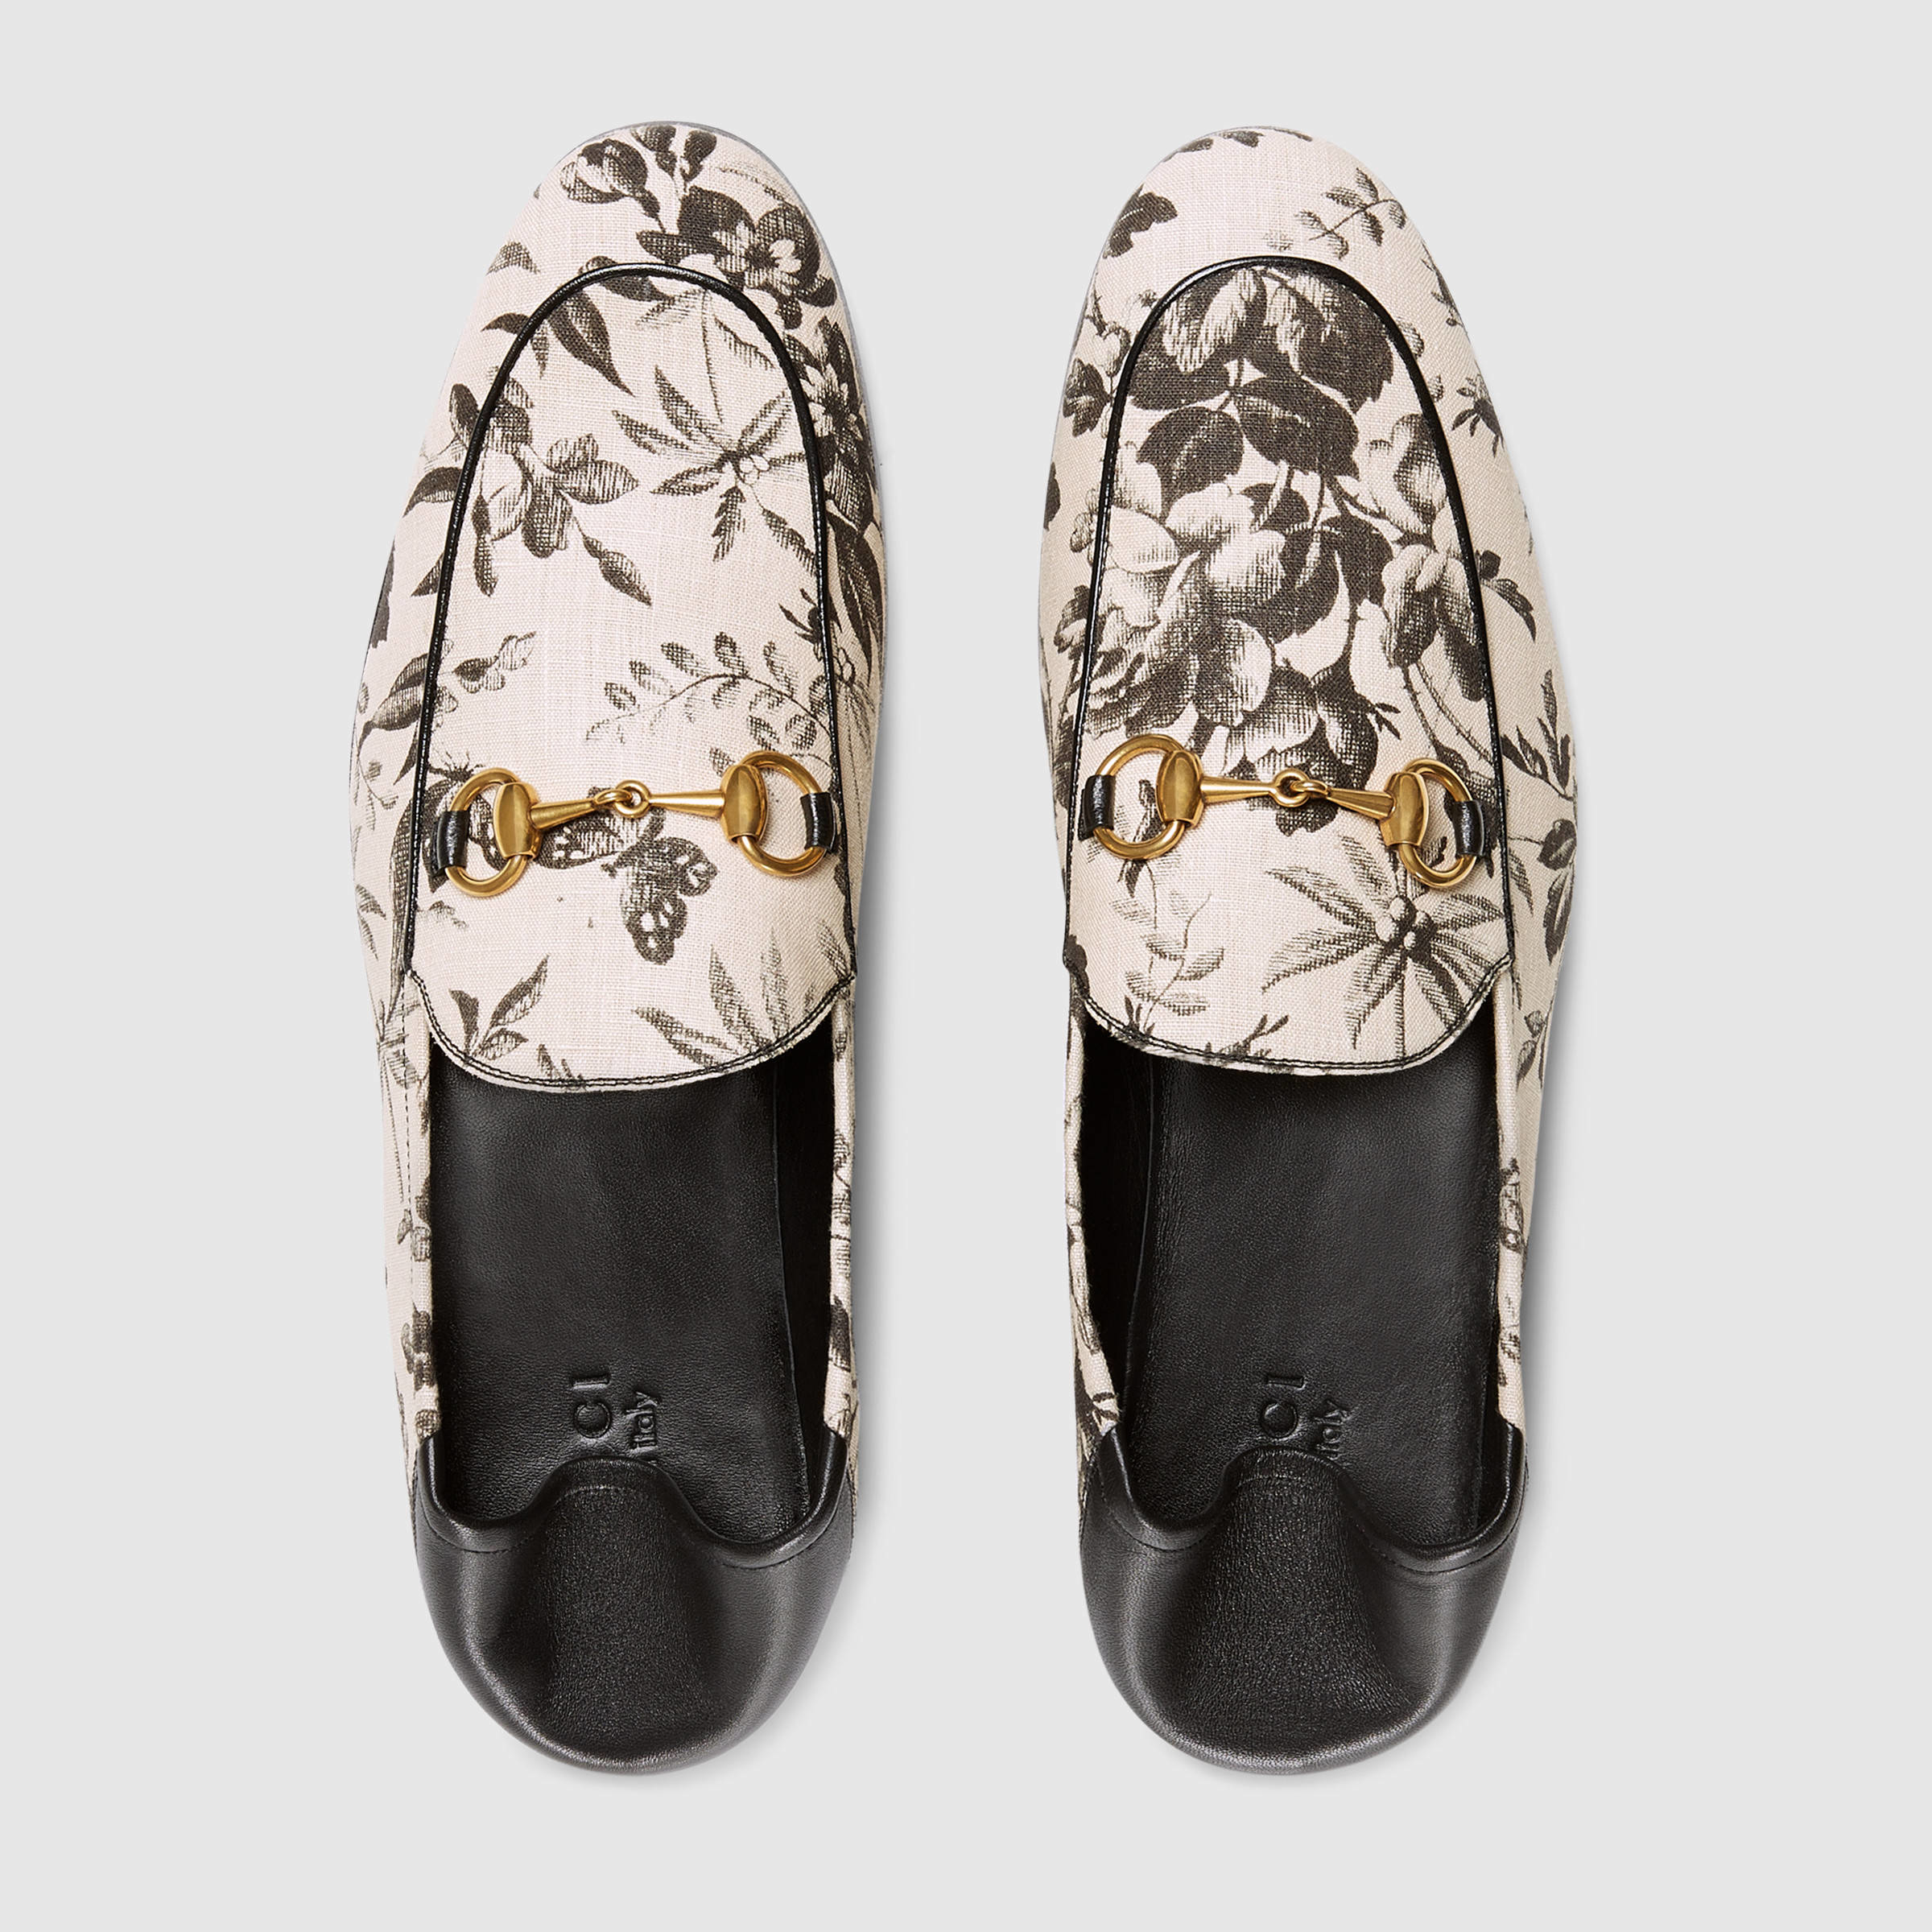 Gucci Leather Herbarium Print Loafer in